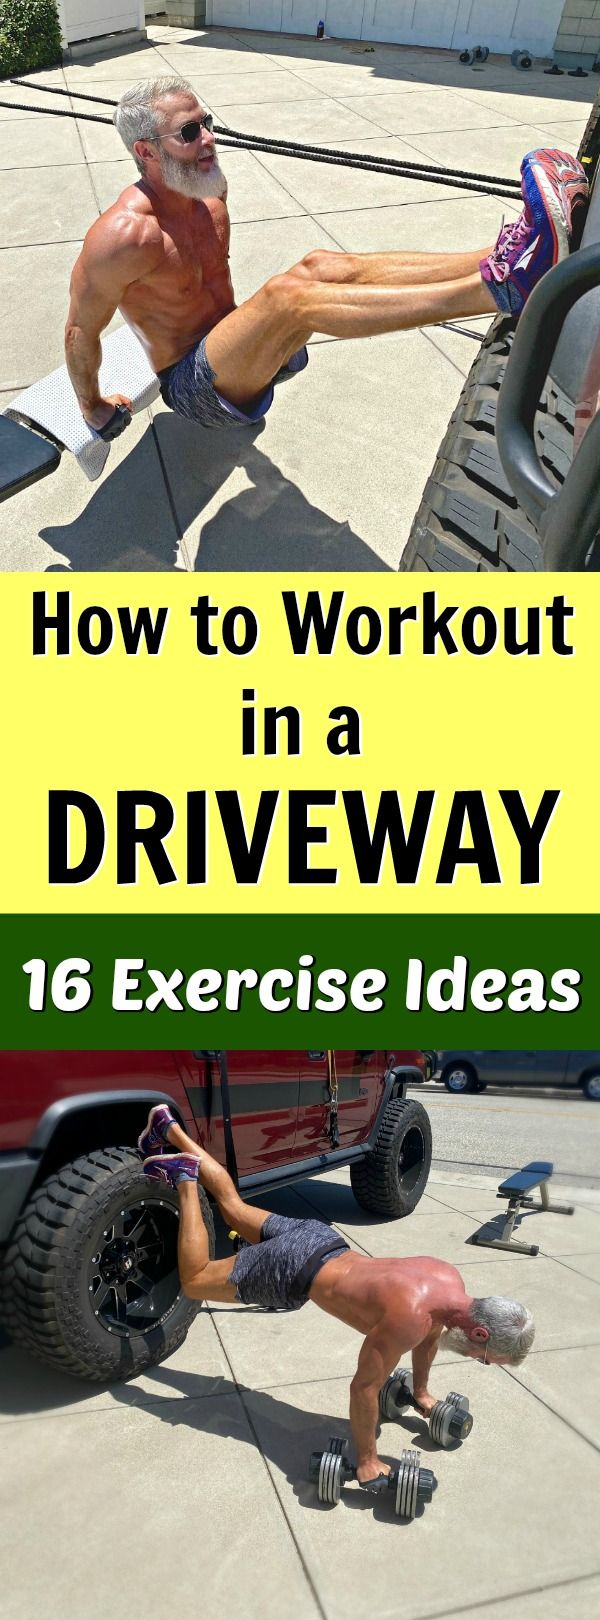 Workout in Your Driveway. Try These Exercises.